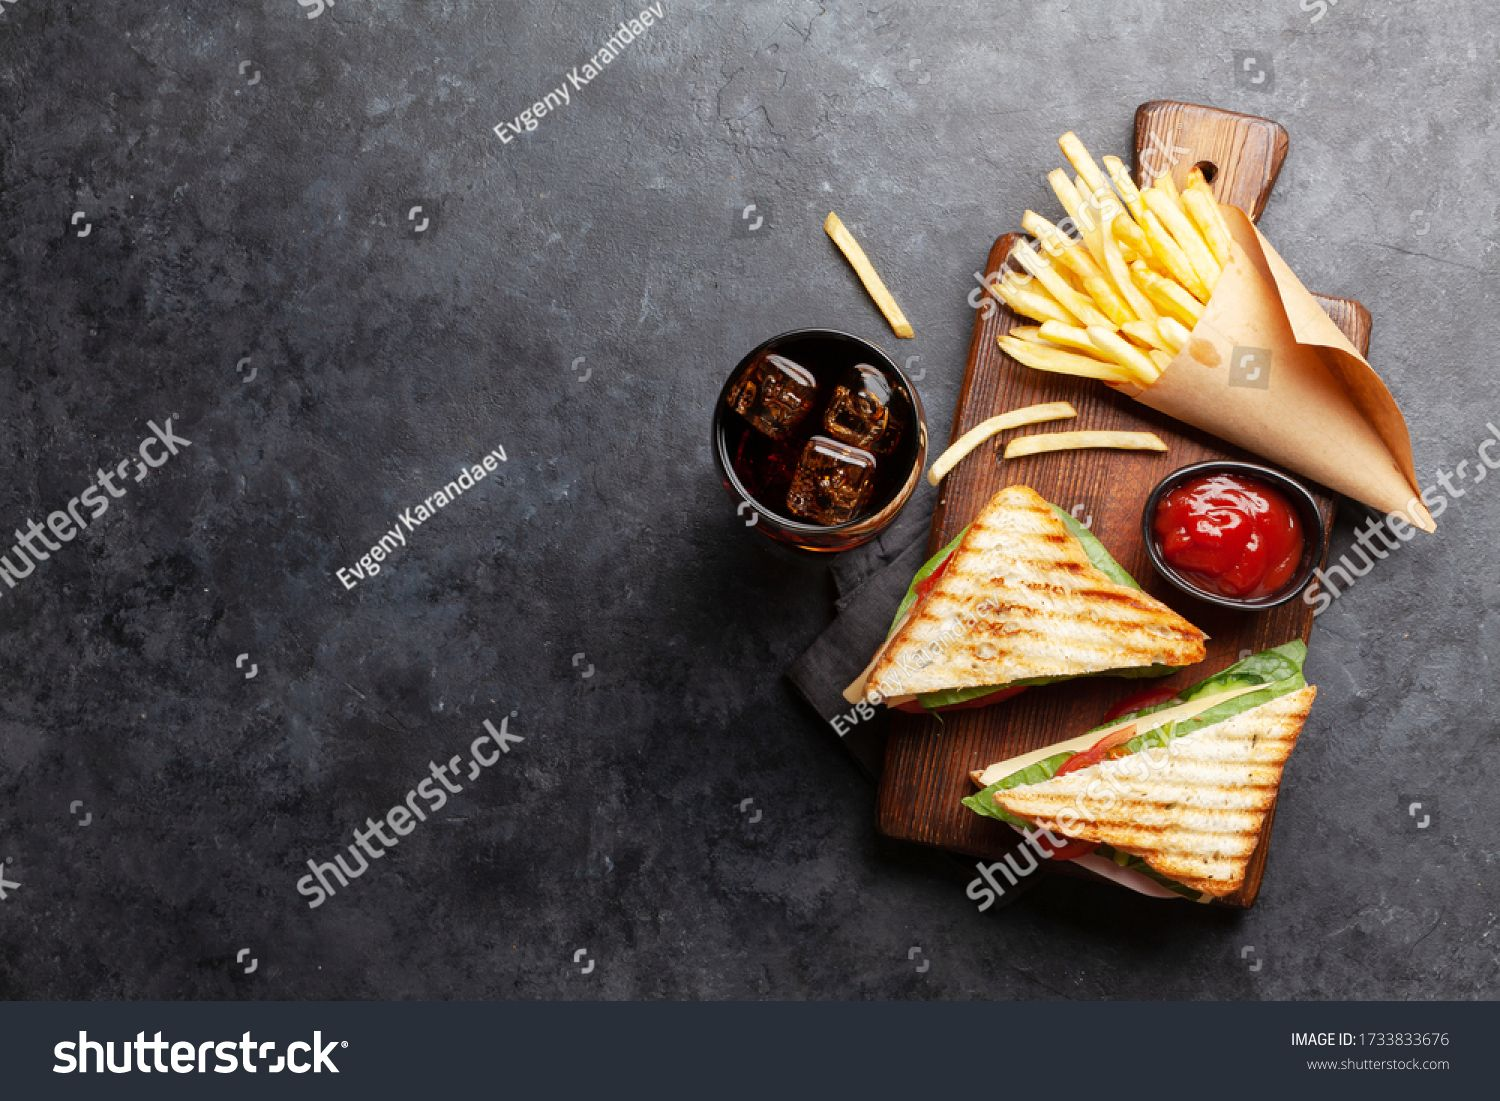 Club Sandwich Potato Fries Chips And Glass Of Cola Drink With Ice Fast Food Take Away Top View With Copy Space Ad Affi In 2020 Club Sandwich Fried Potatoes Food